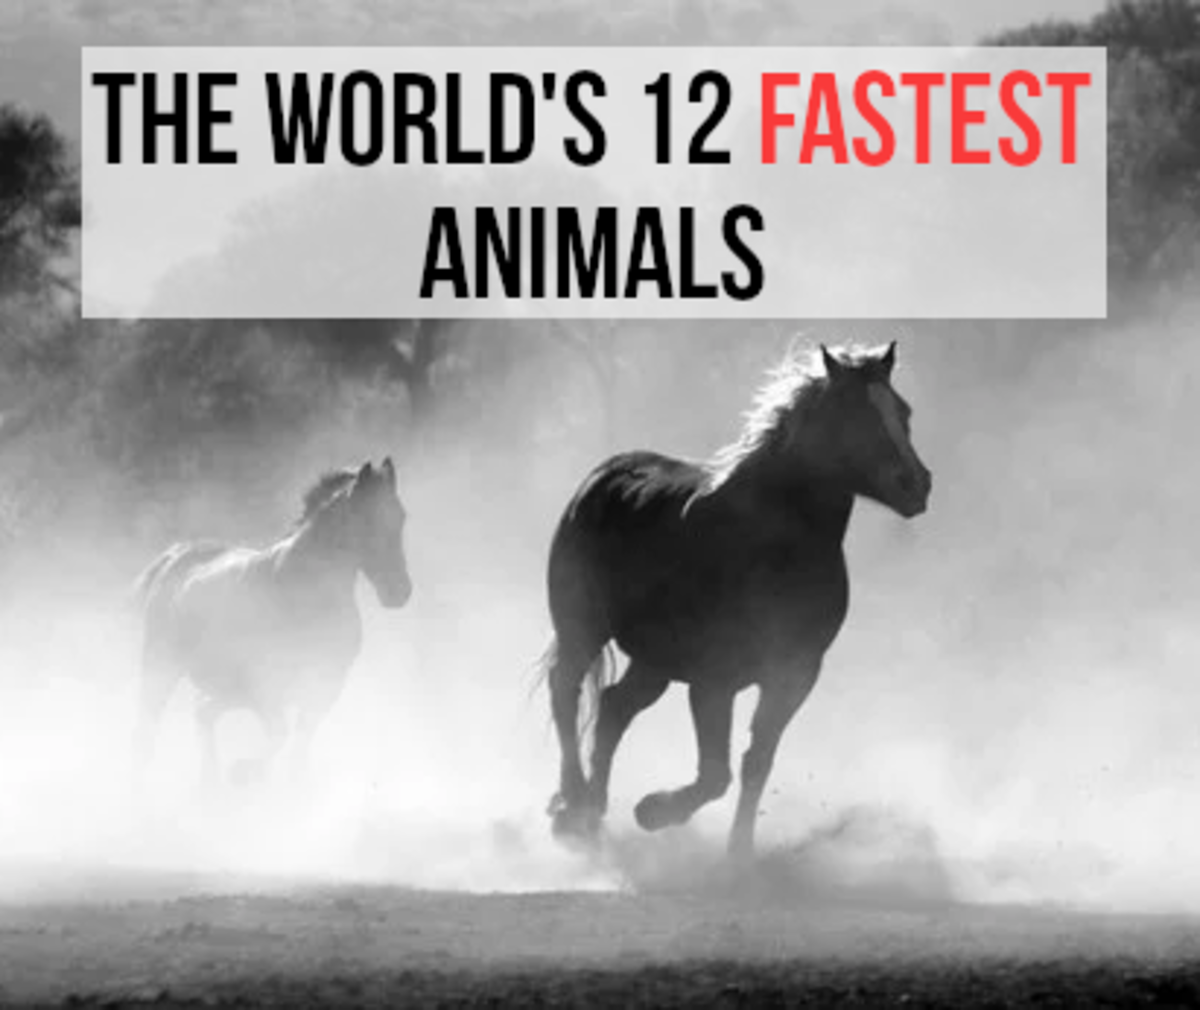 Top 12 Fastest Land Animals in the World